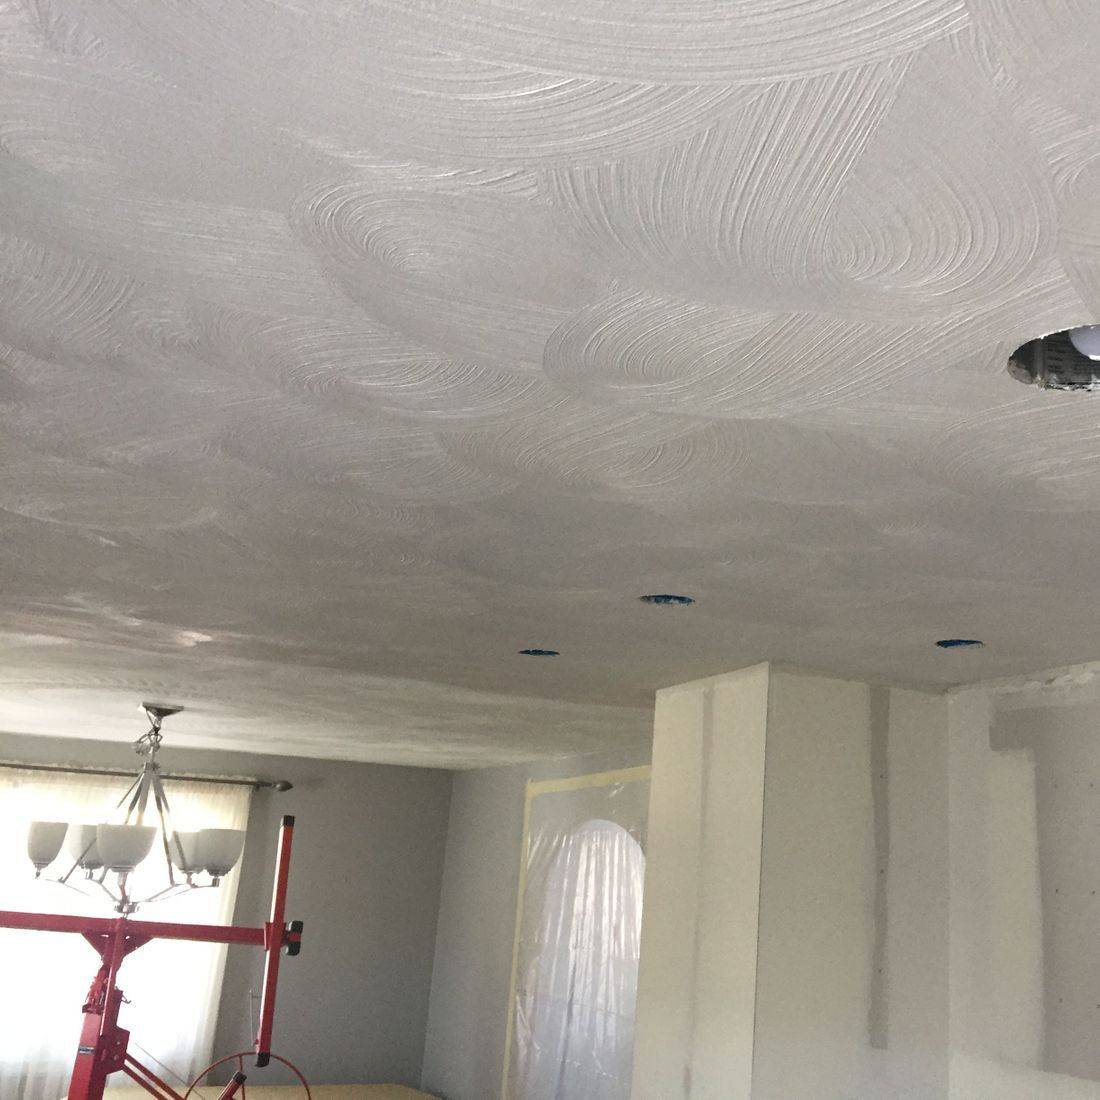 After/Texture to match existing ceiling